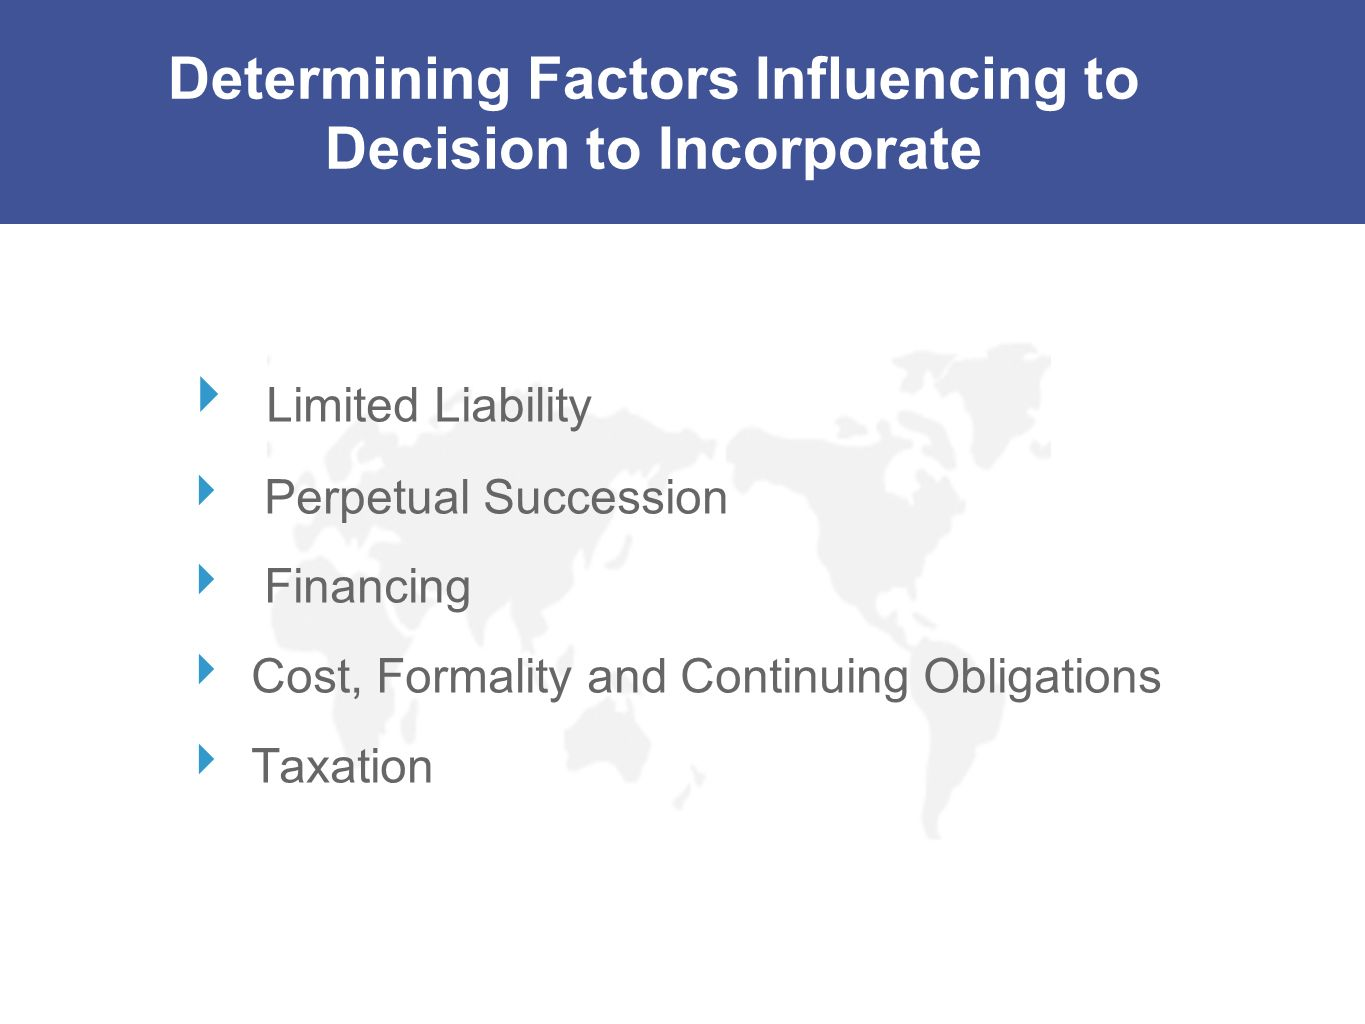 Determining Factors Influencing to Decision to Incorporate